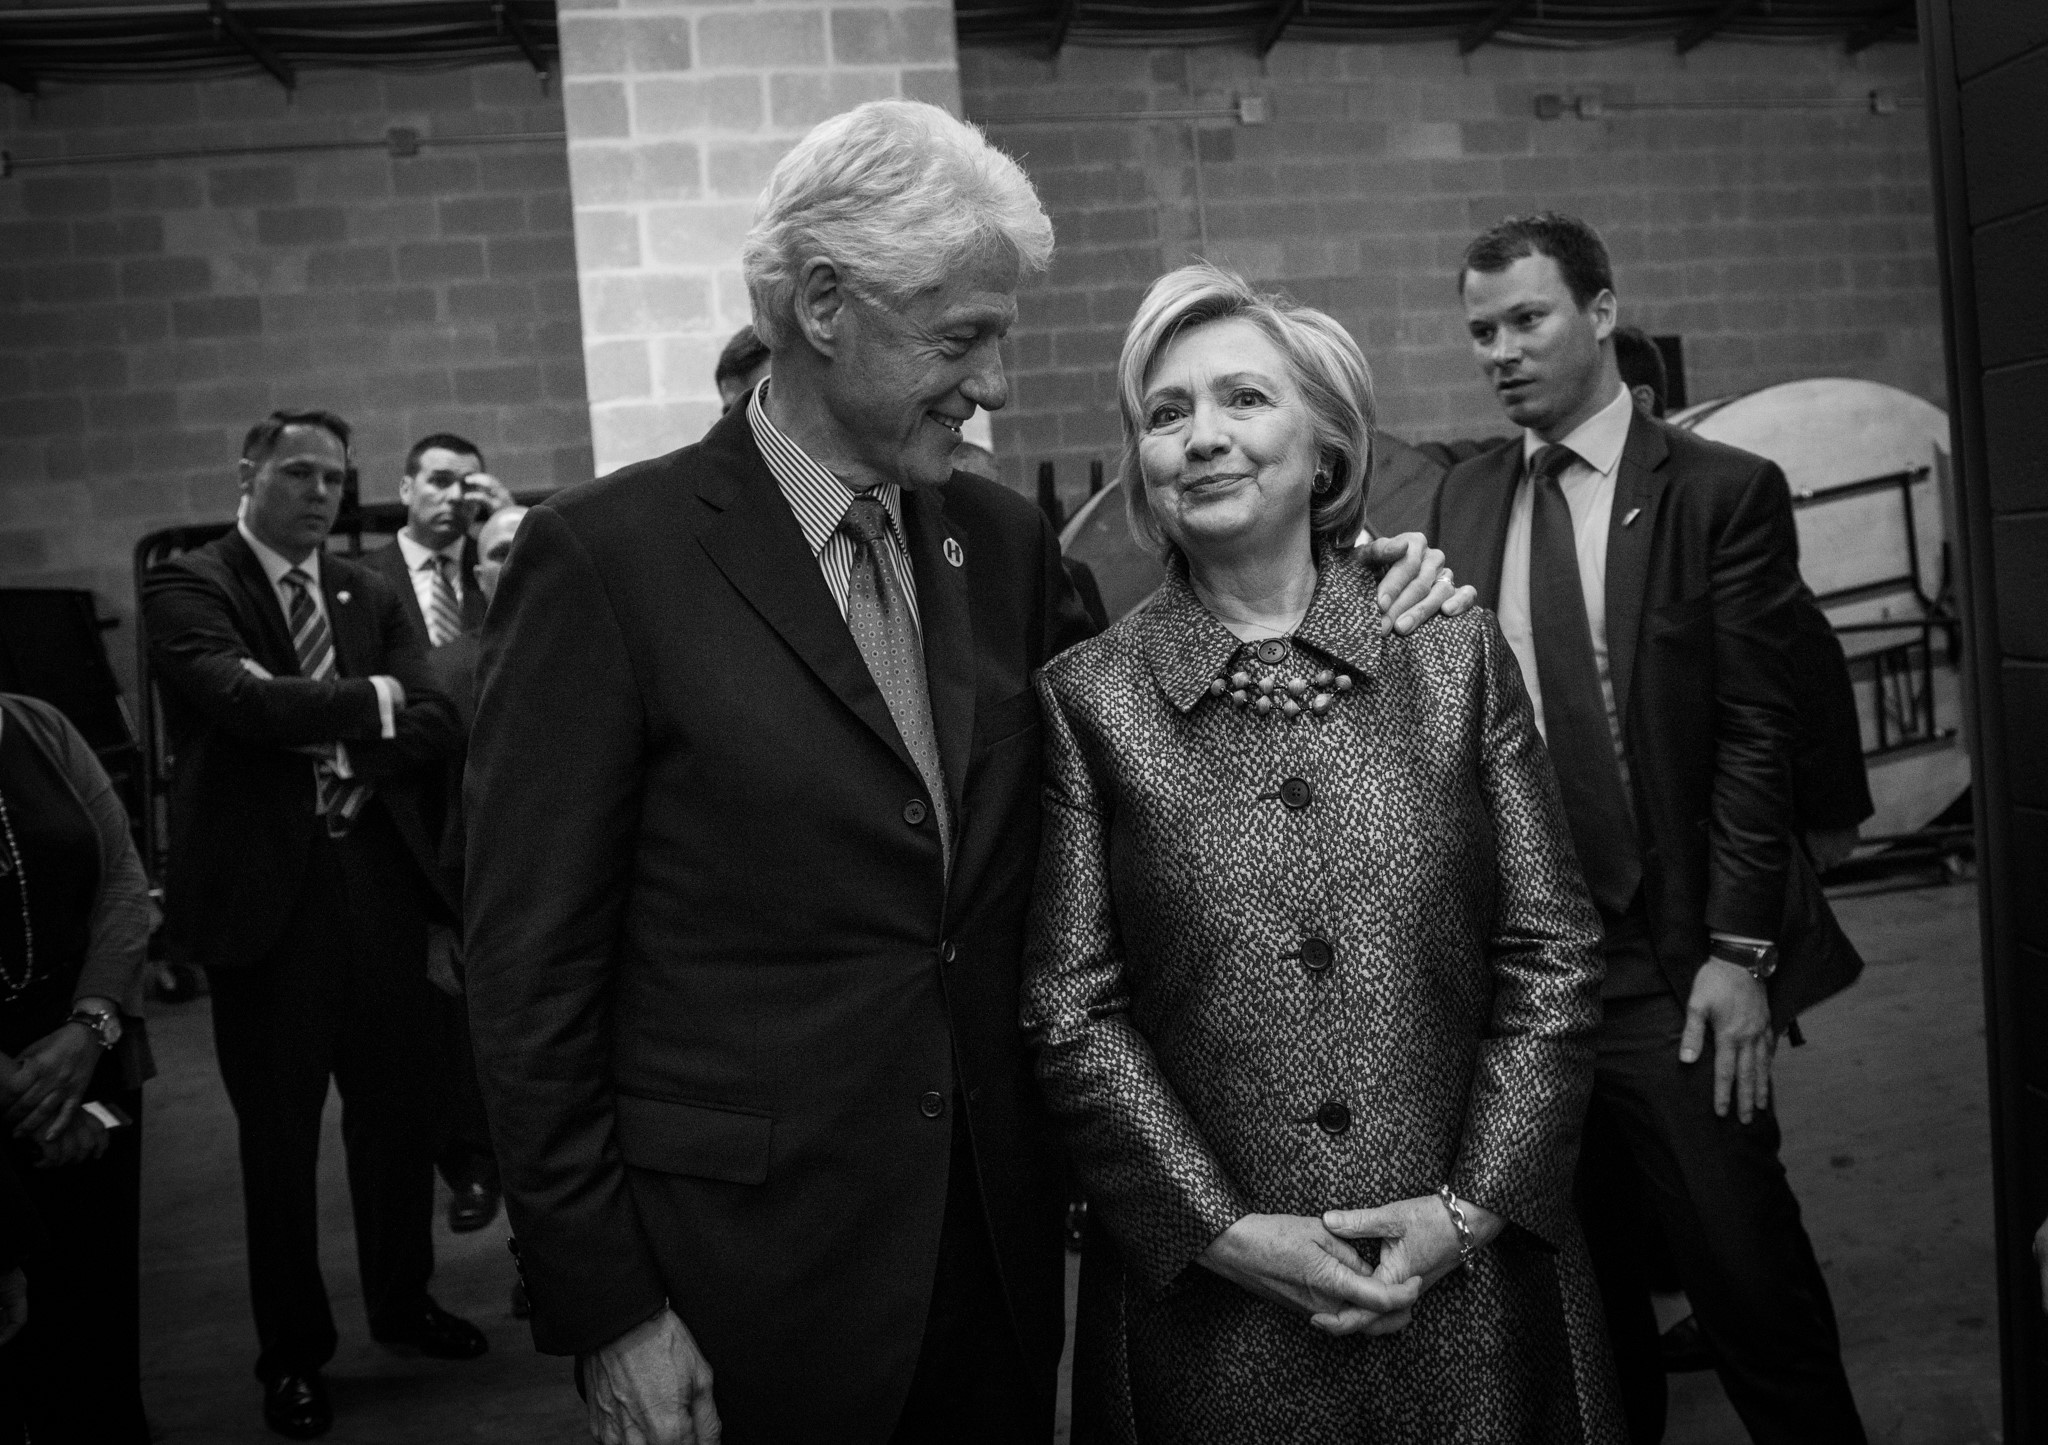 Steve Russell: Clintons continue to get away with corrupt actions